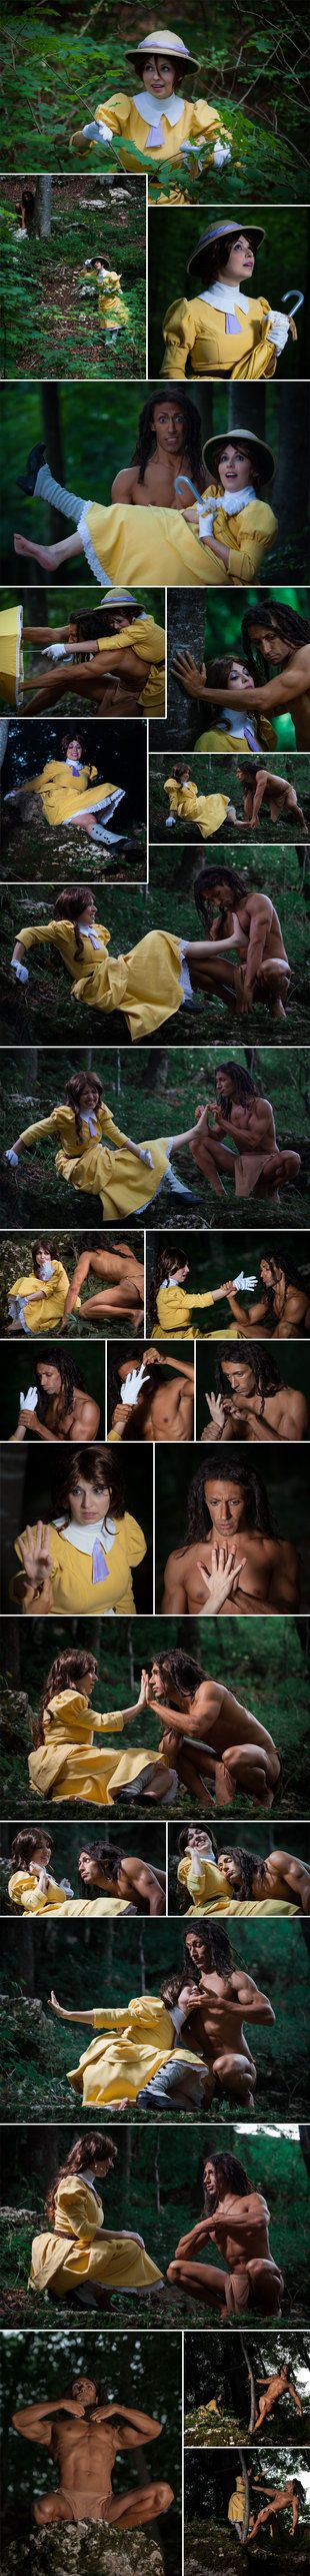 This is a really good cosplay. Maybe Tarzan could've used a different colored garment as he is not a cartoon but it's still good!